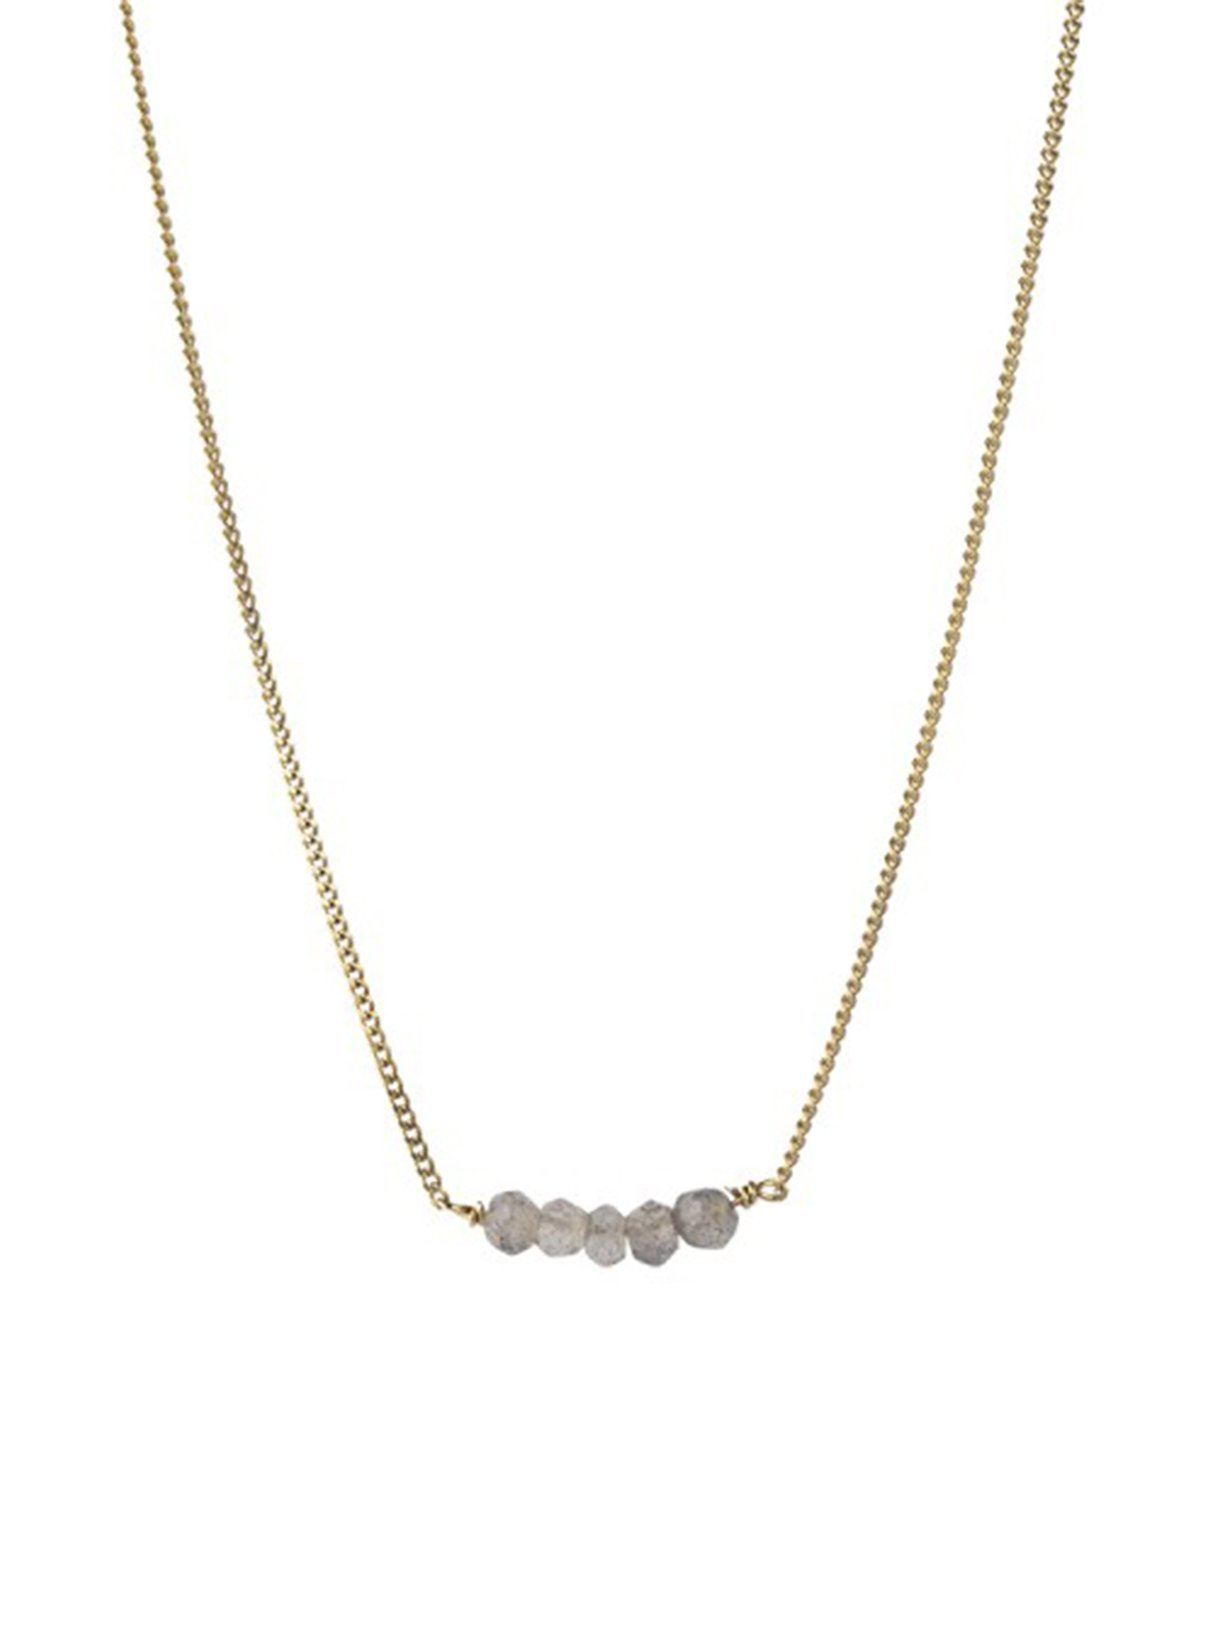 Petite labradorite necklace - sterling silver gold-plated